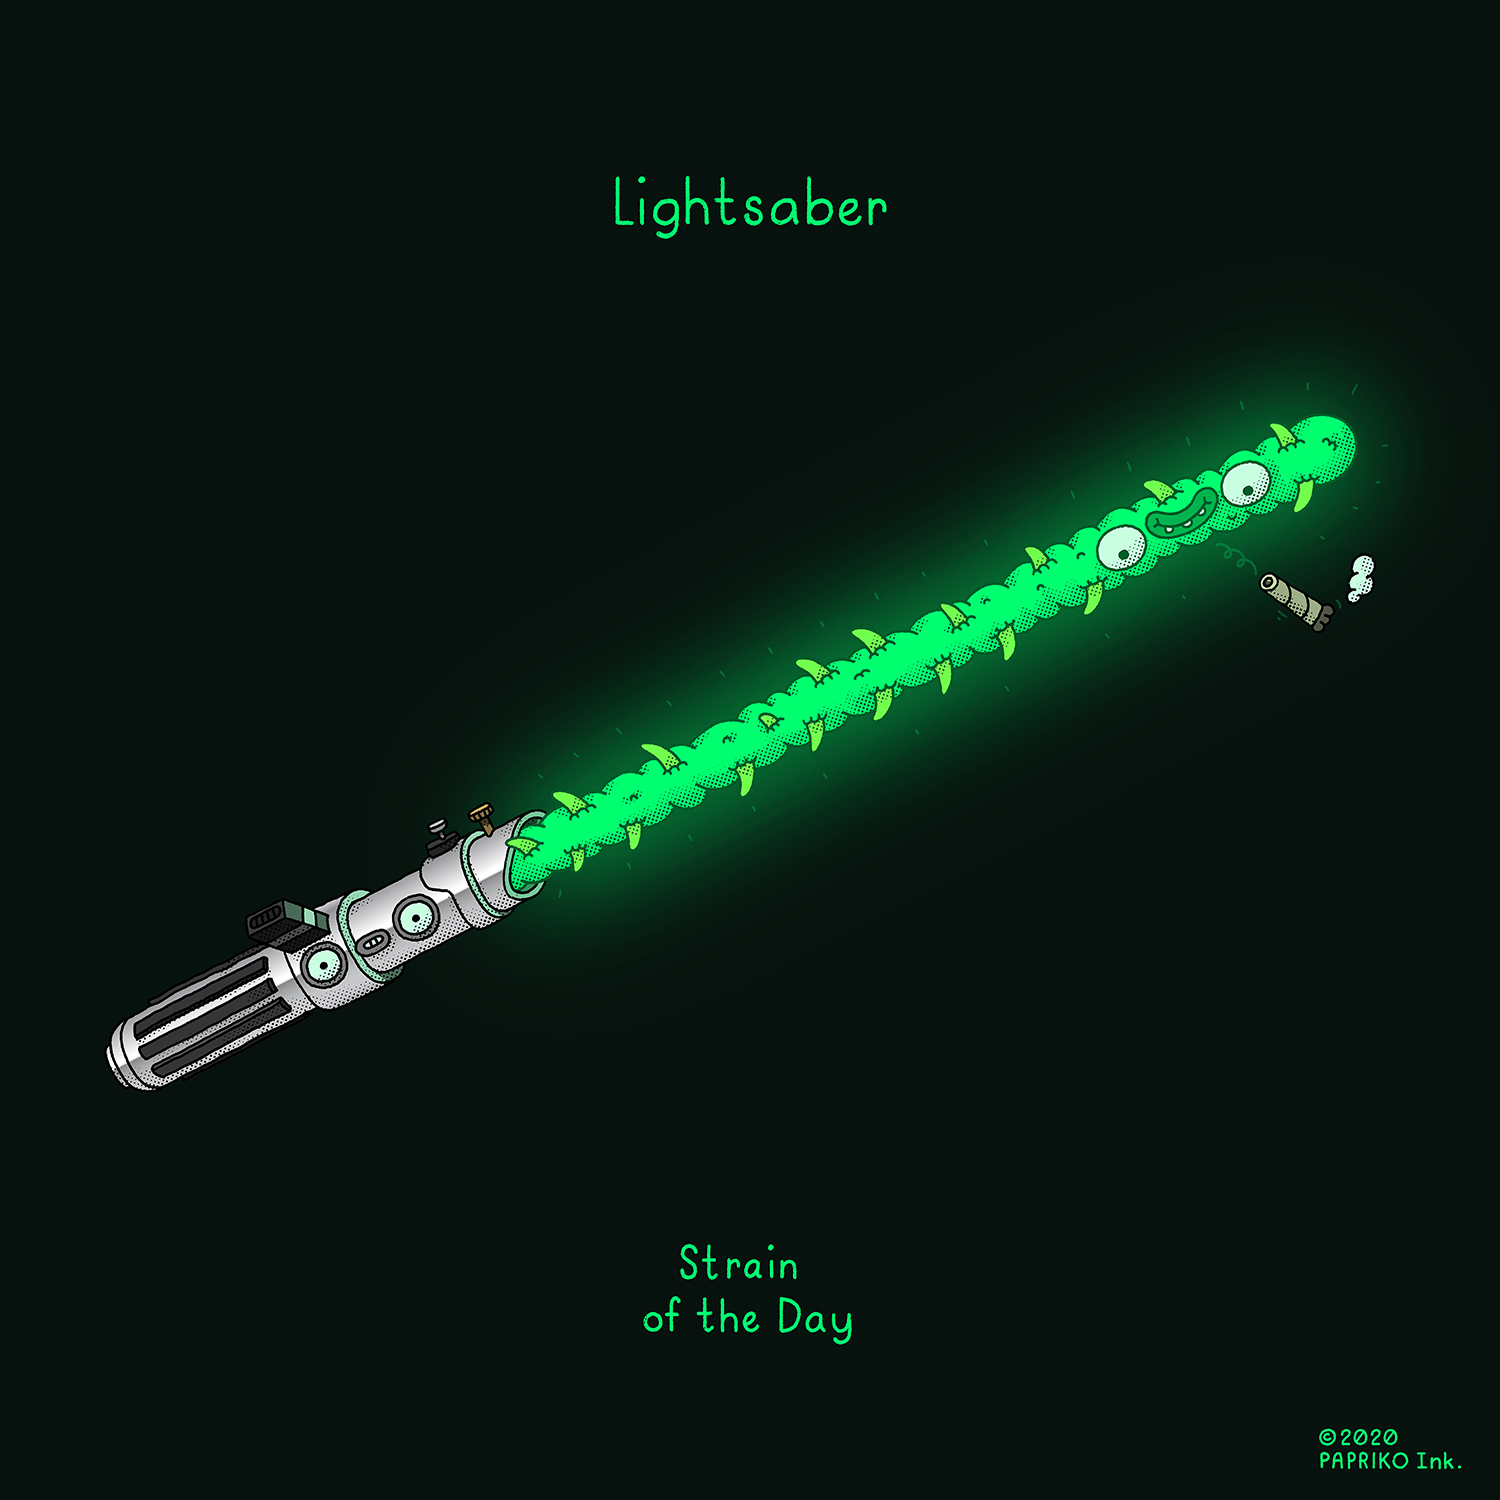 'Lightsaber' - Strain of the Day #201